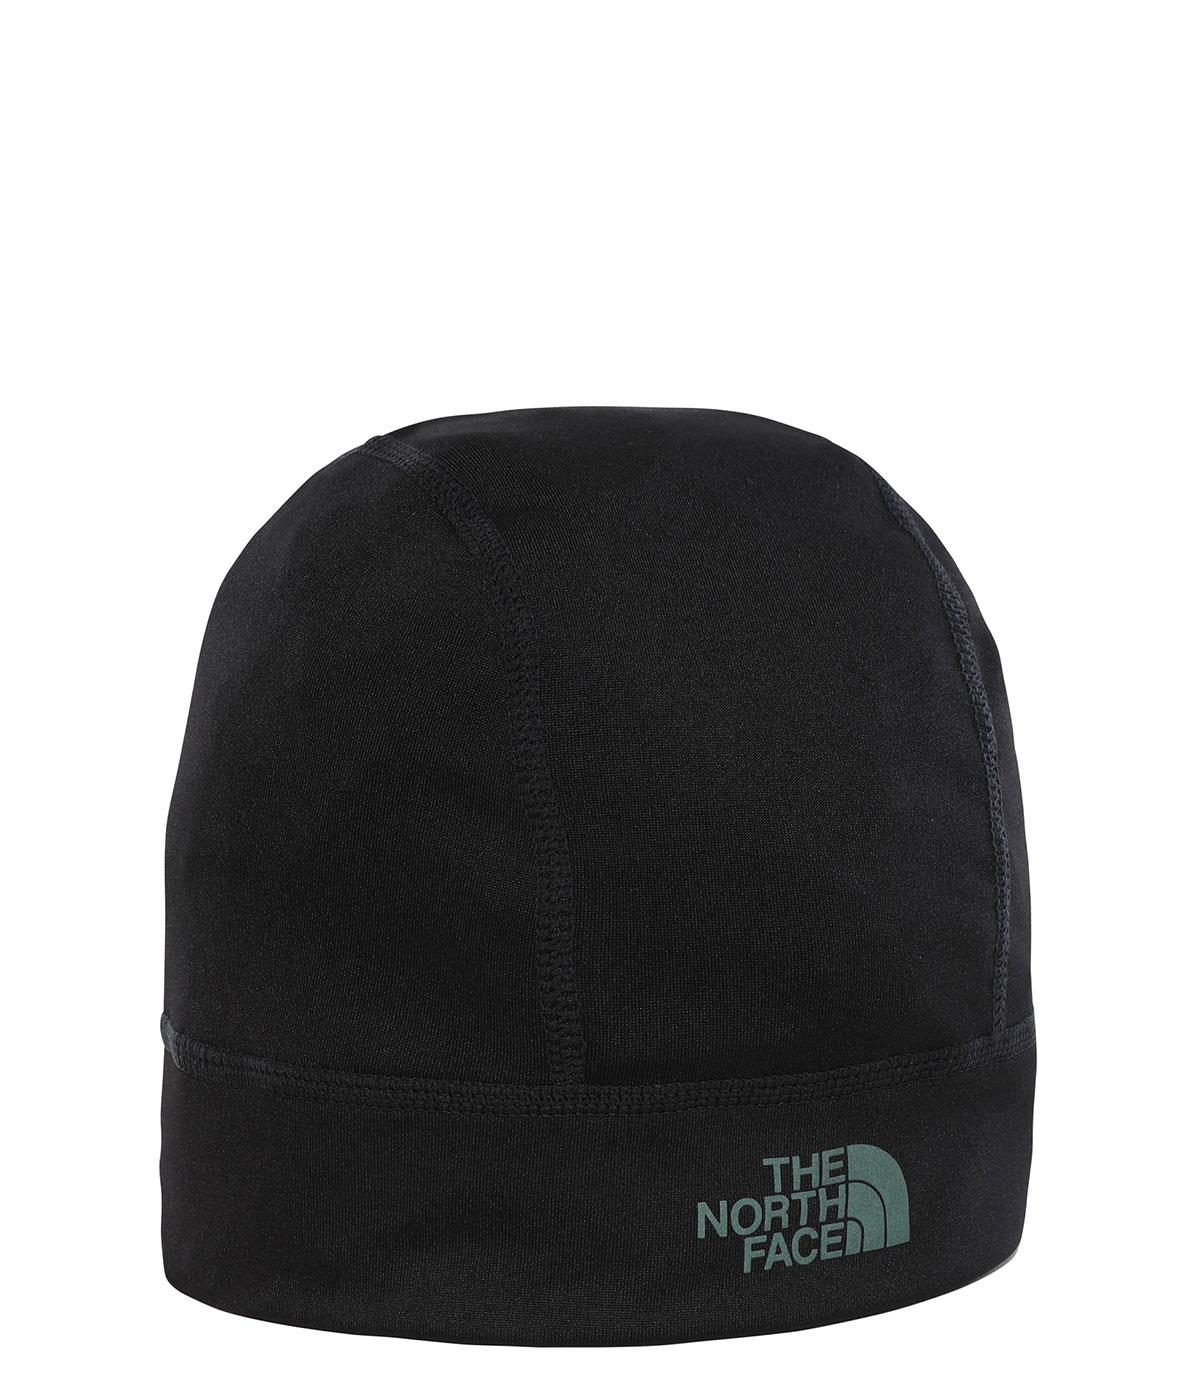 The North Face Winter Warm Bere Nf0A3Fmkjh81